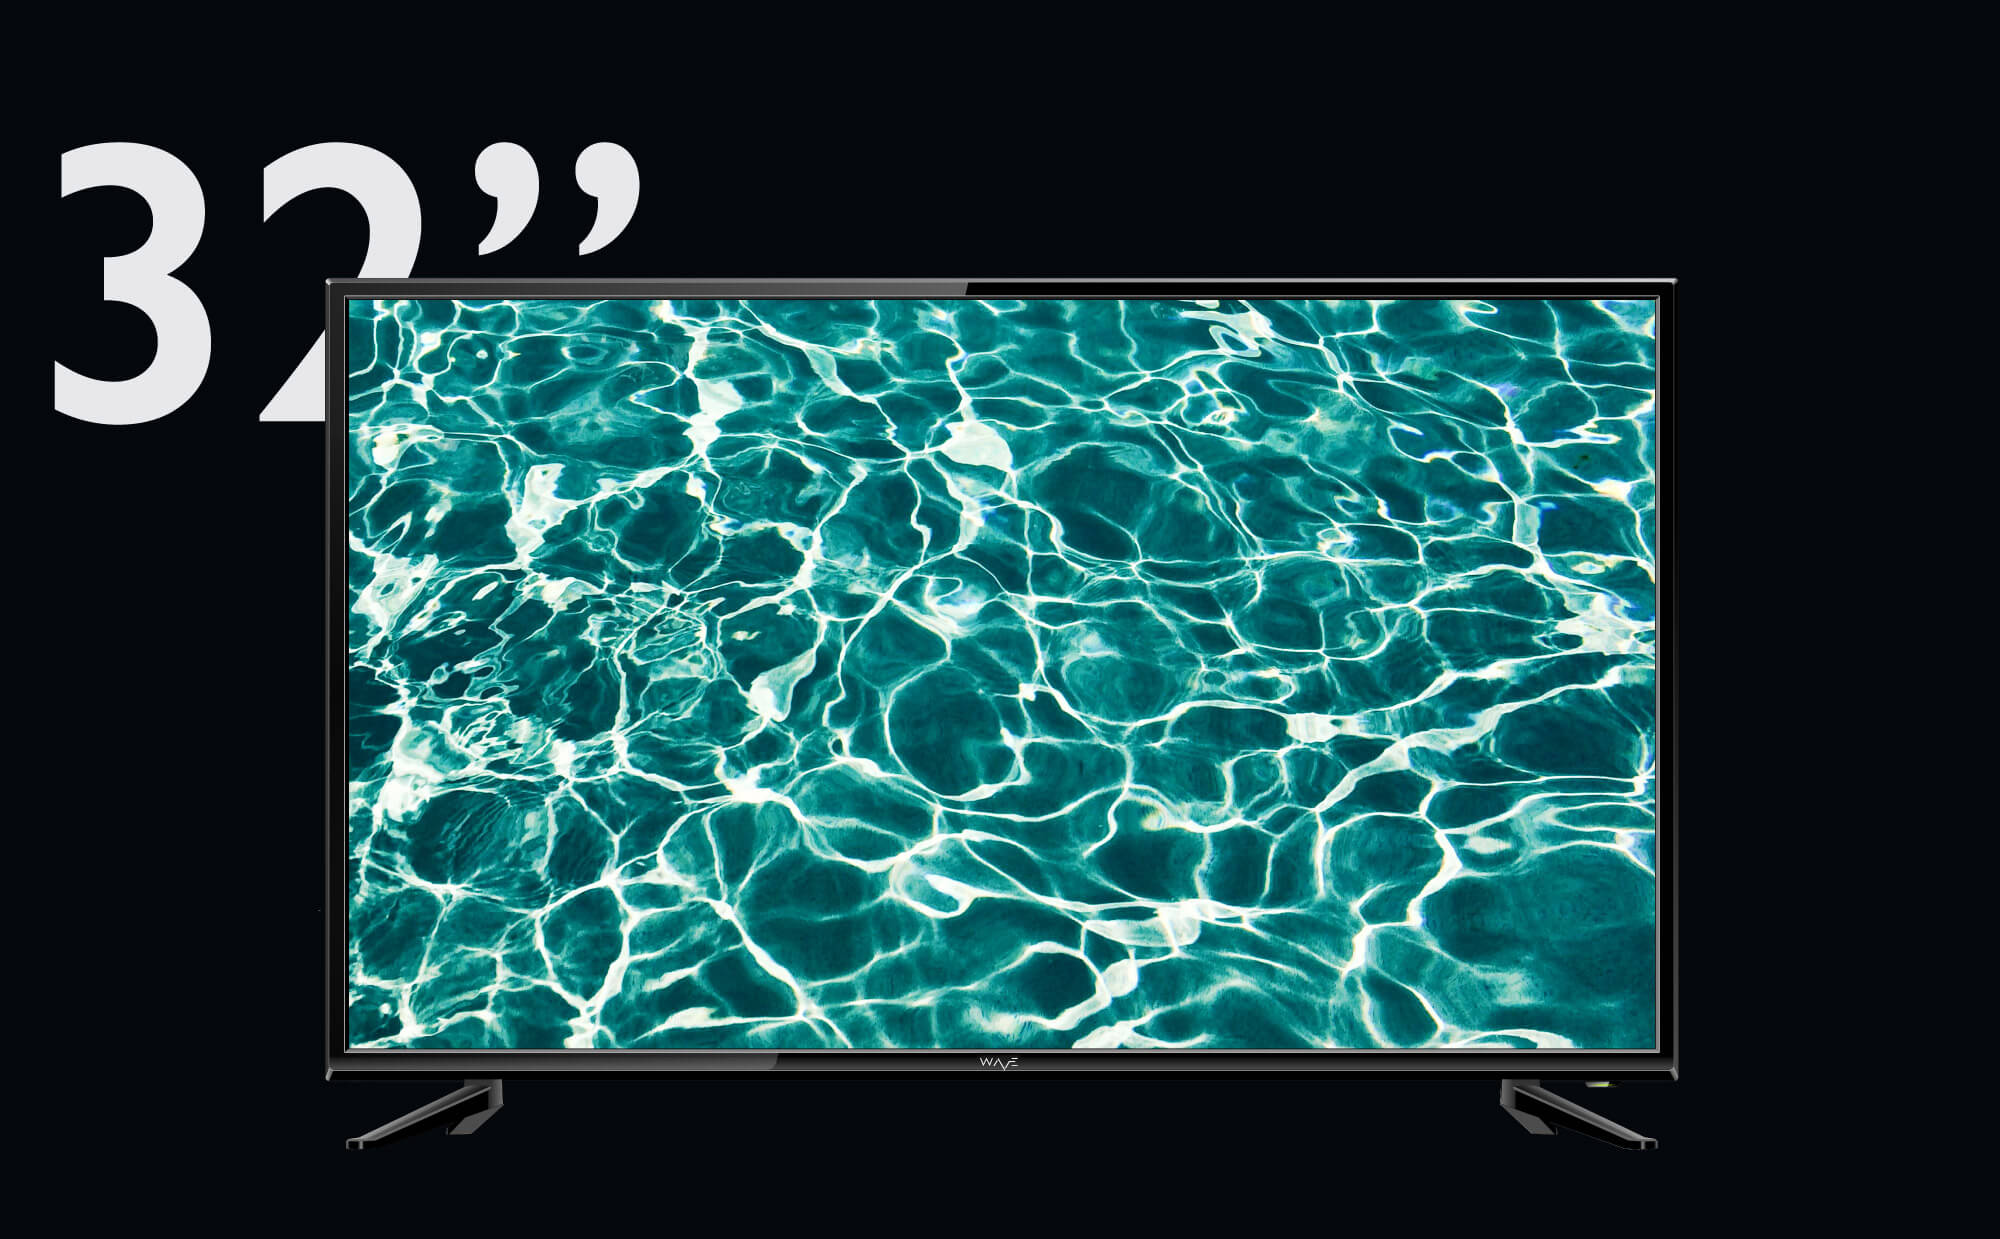 """WAVE Electronics presents 32"""" RIPPLE with Wifi, HD ready screen and Android 7.0 OS at an unbeatable price"""